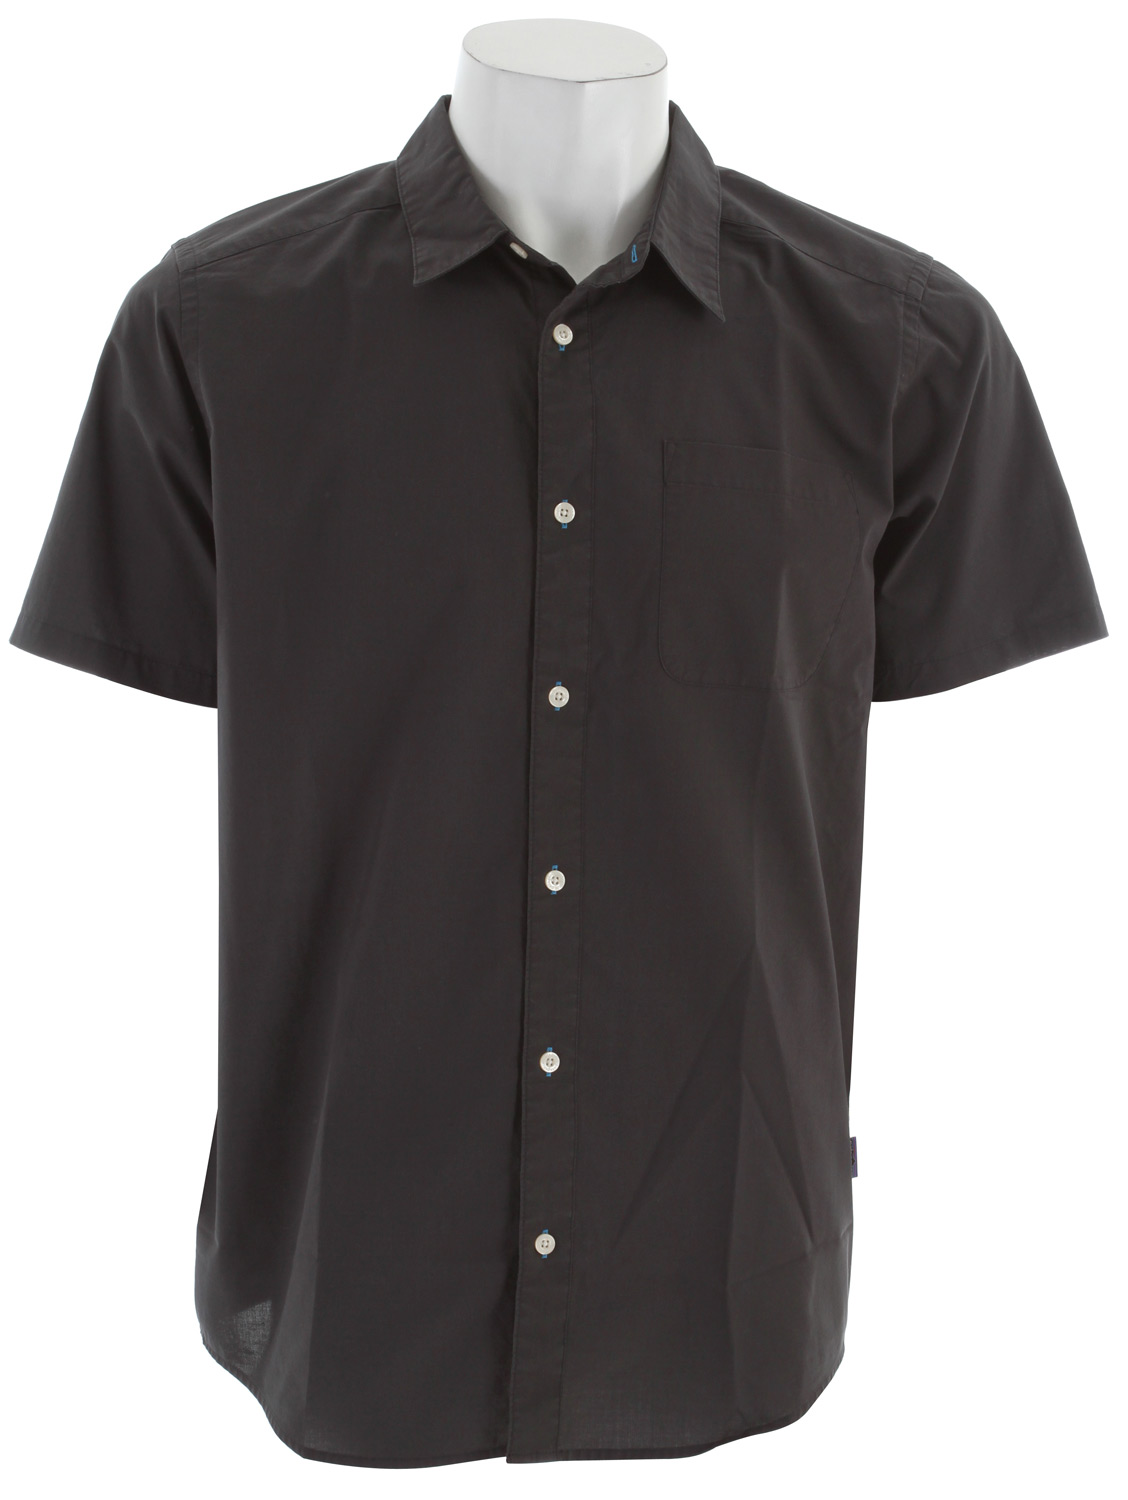 A comfortable, easy-care short-sleeved shirt in an organic cotton/polyester plain weave. fabric: 3.7-oz 70% organic cotton/30% polyester plain weaveKey Features of the Patagonia Go To Shirt: Lightweight, breathable organic cotton/polyester plain weave Button-front shirt with single left-chest pocket Shirttail hem Slim fit - $38.95